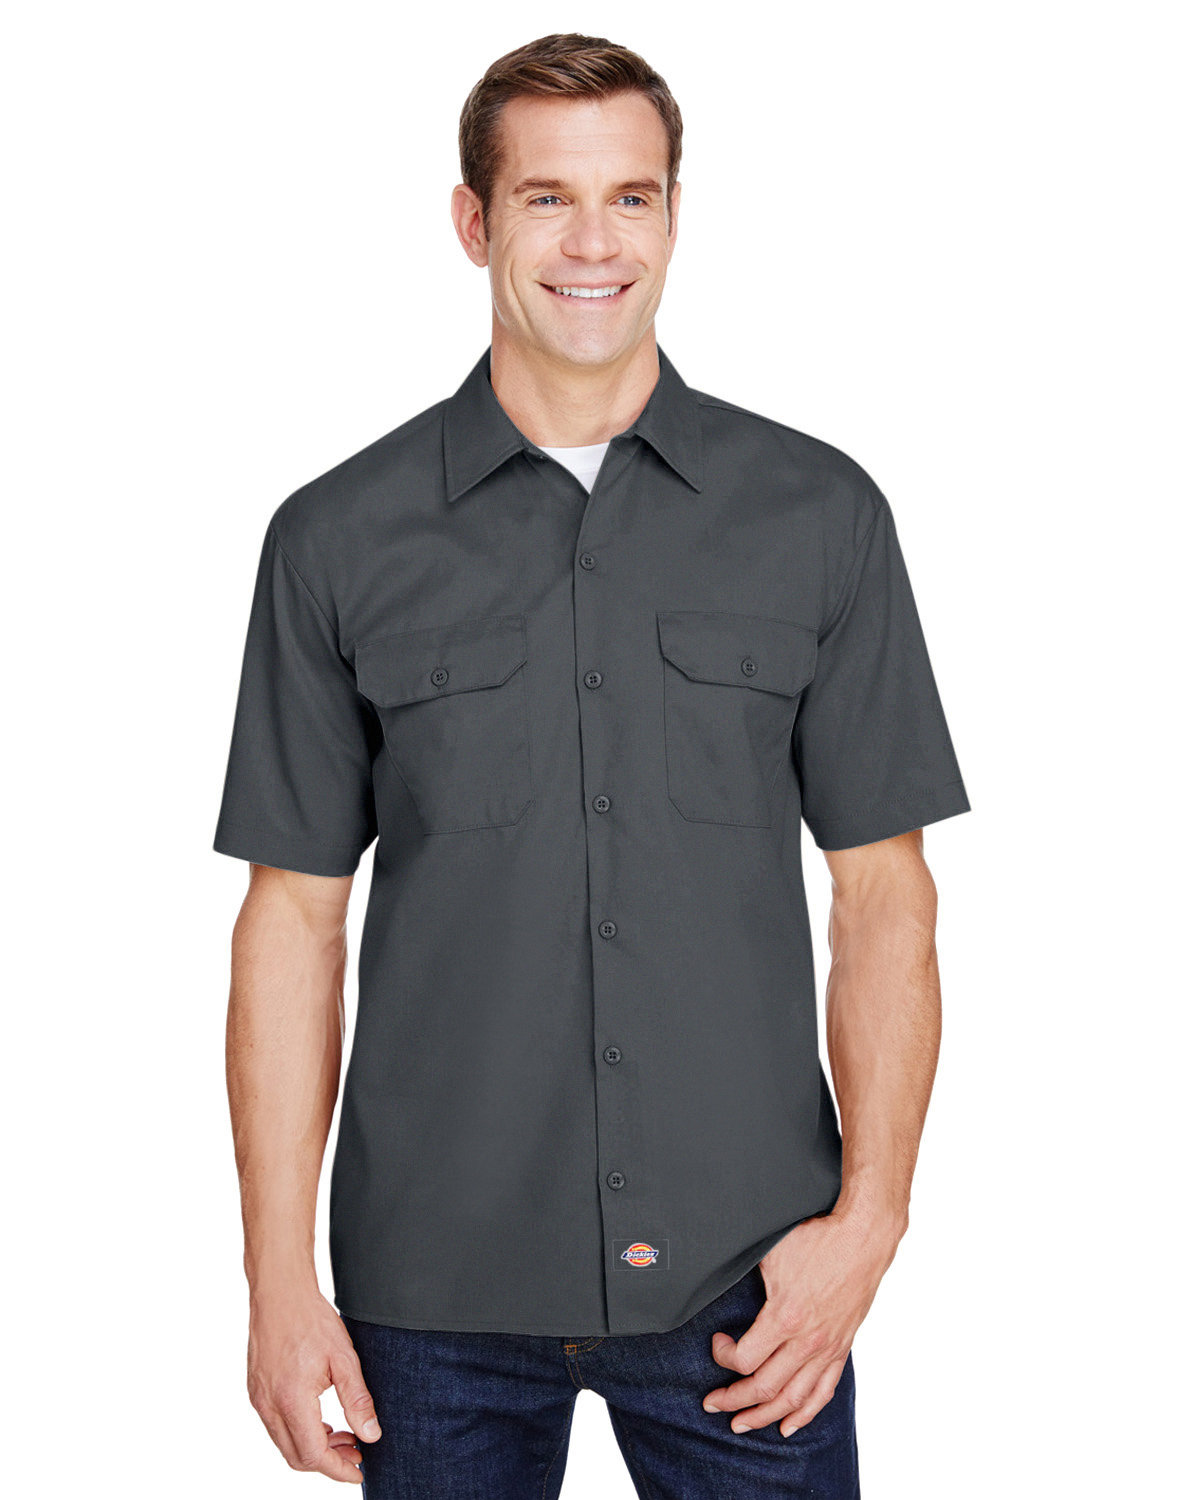 Dickies Men's FLEX Relaxed Fit Short-Sleeve Twill Work Shirt CHARCOAL